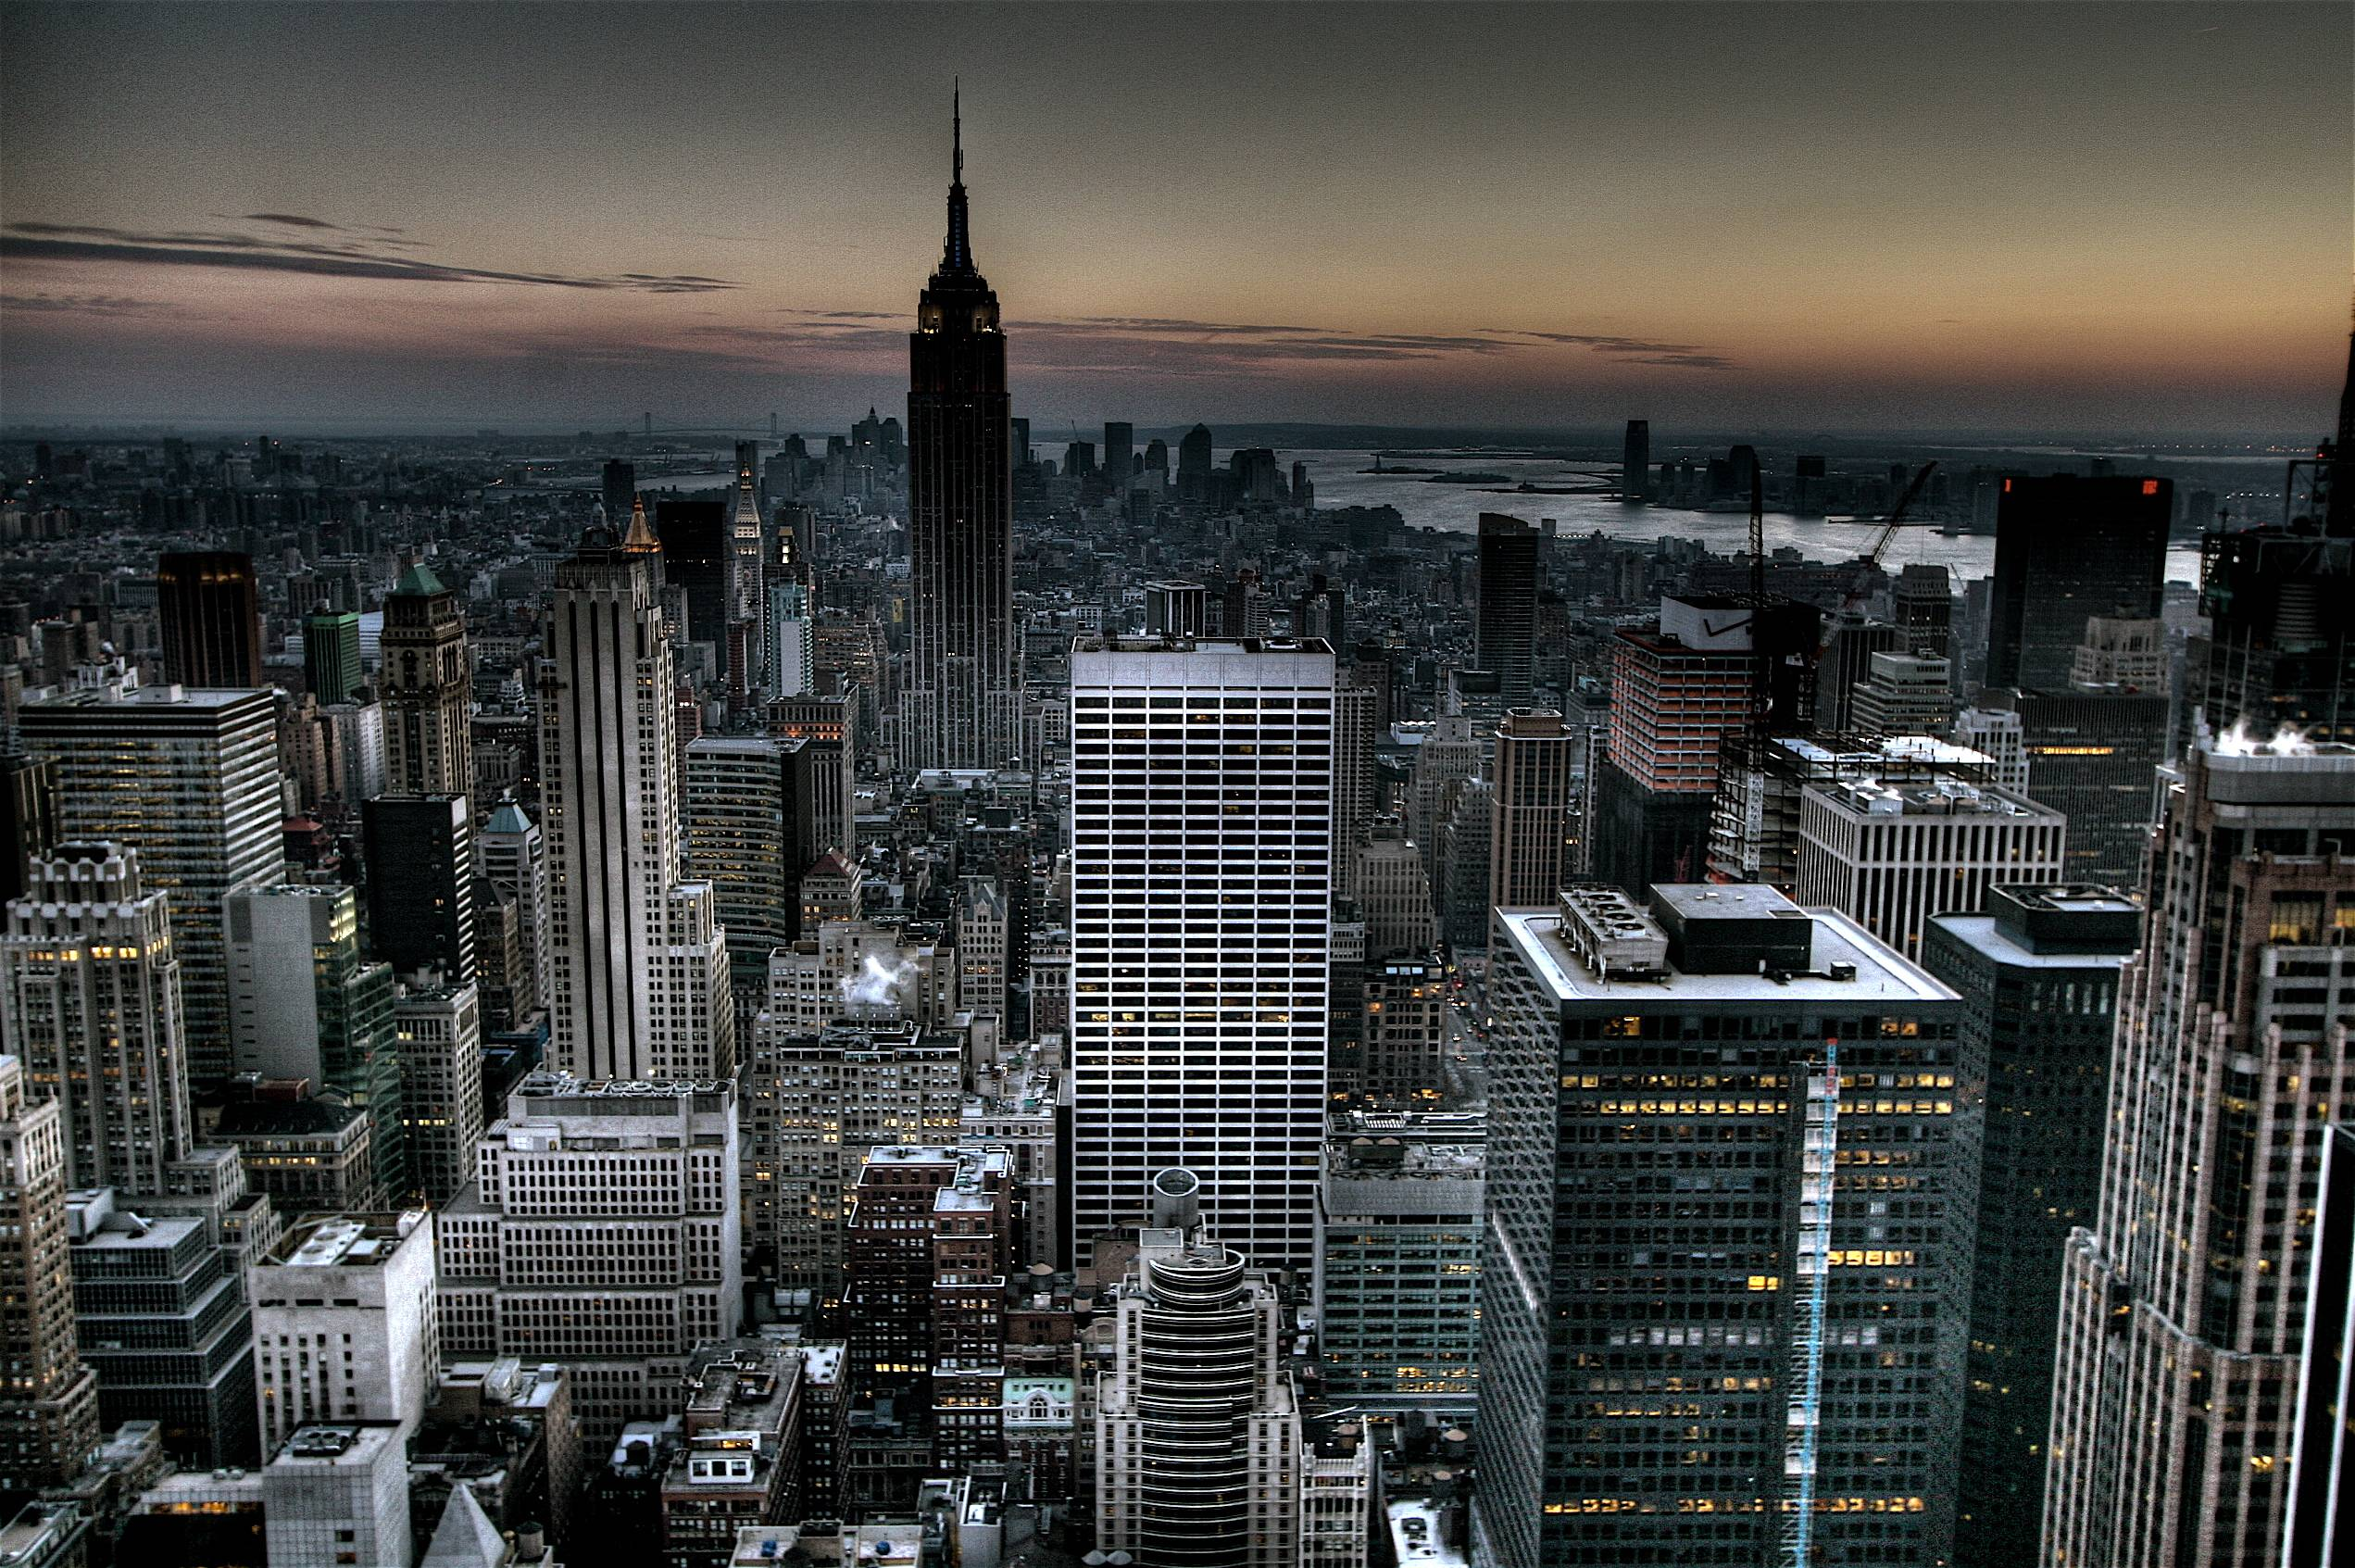 New York City Desktop Backgrounds 2543x1693